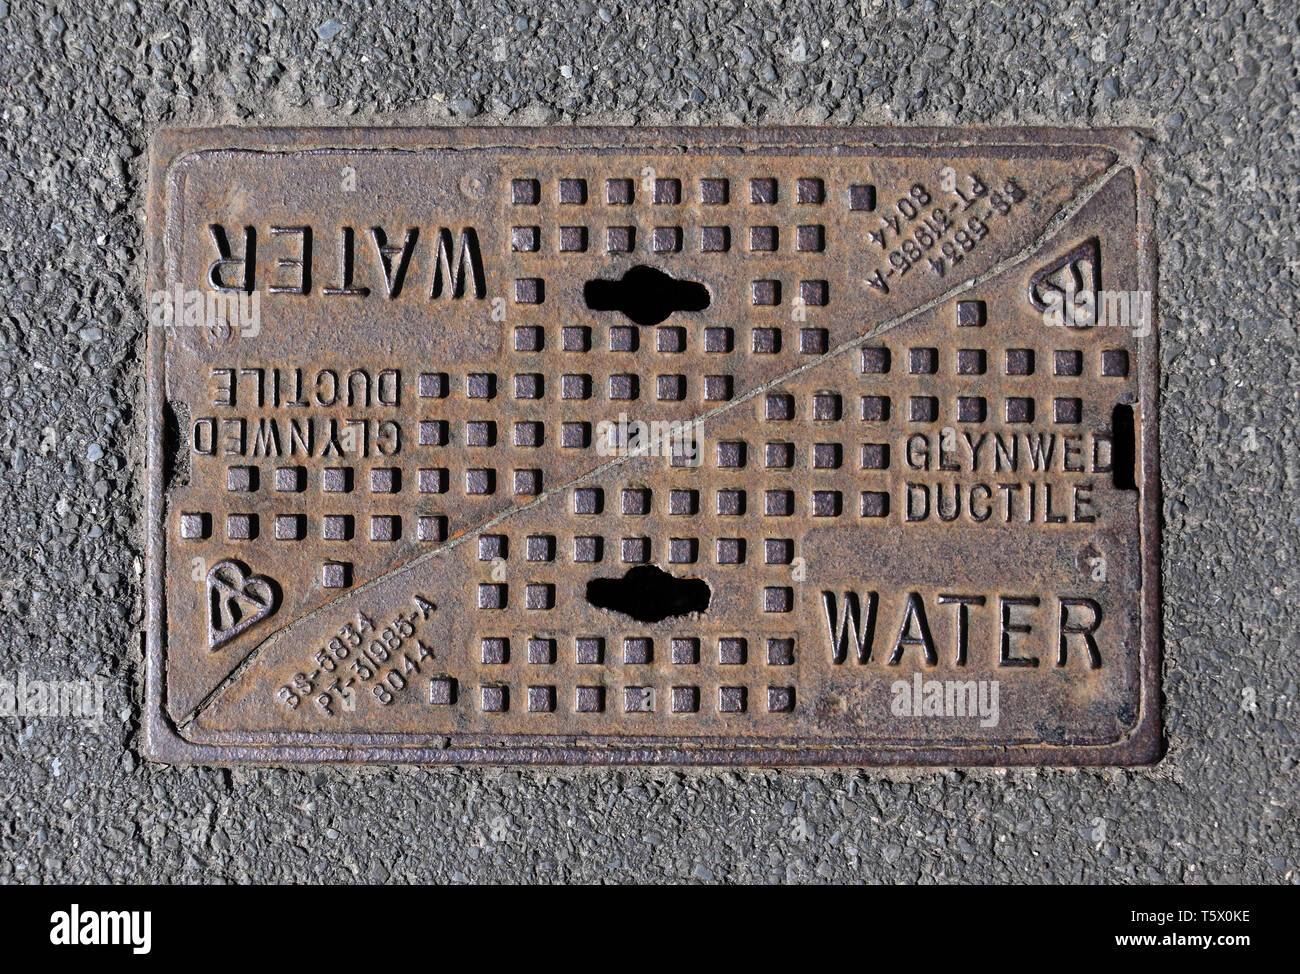 Cast Iron Inspection Chamber Cover. Glynwed Ductile. Water. BS-5834. PT-31985-A. 8044. - Stock Image